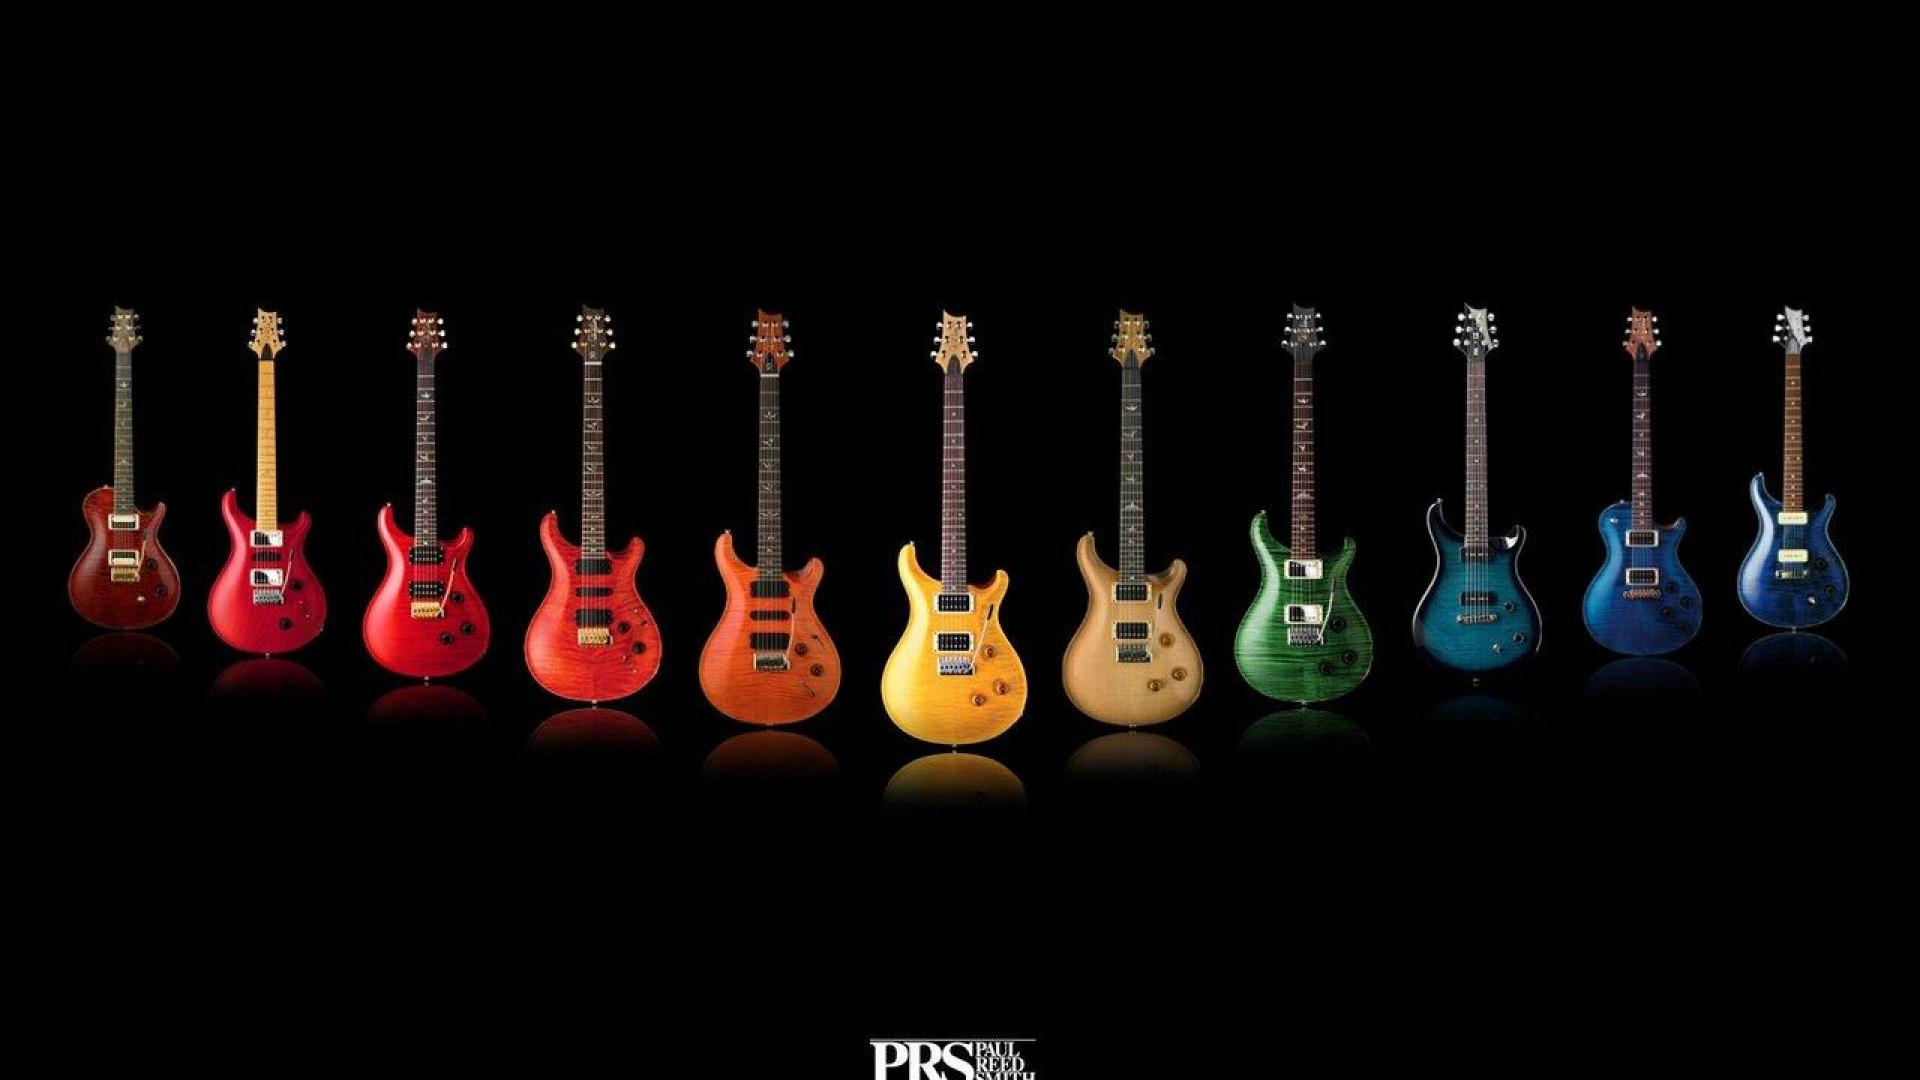 PAUL REED SMITH SPECTRUM WALLPAPER   15331   HD Wallpapers 1920x1080